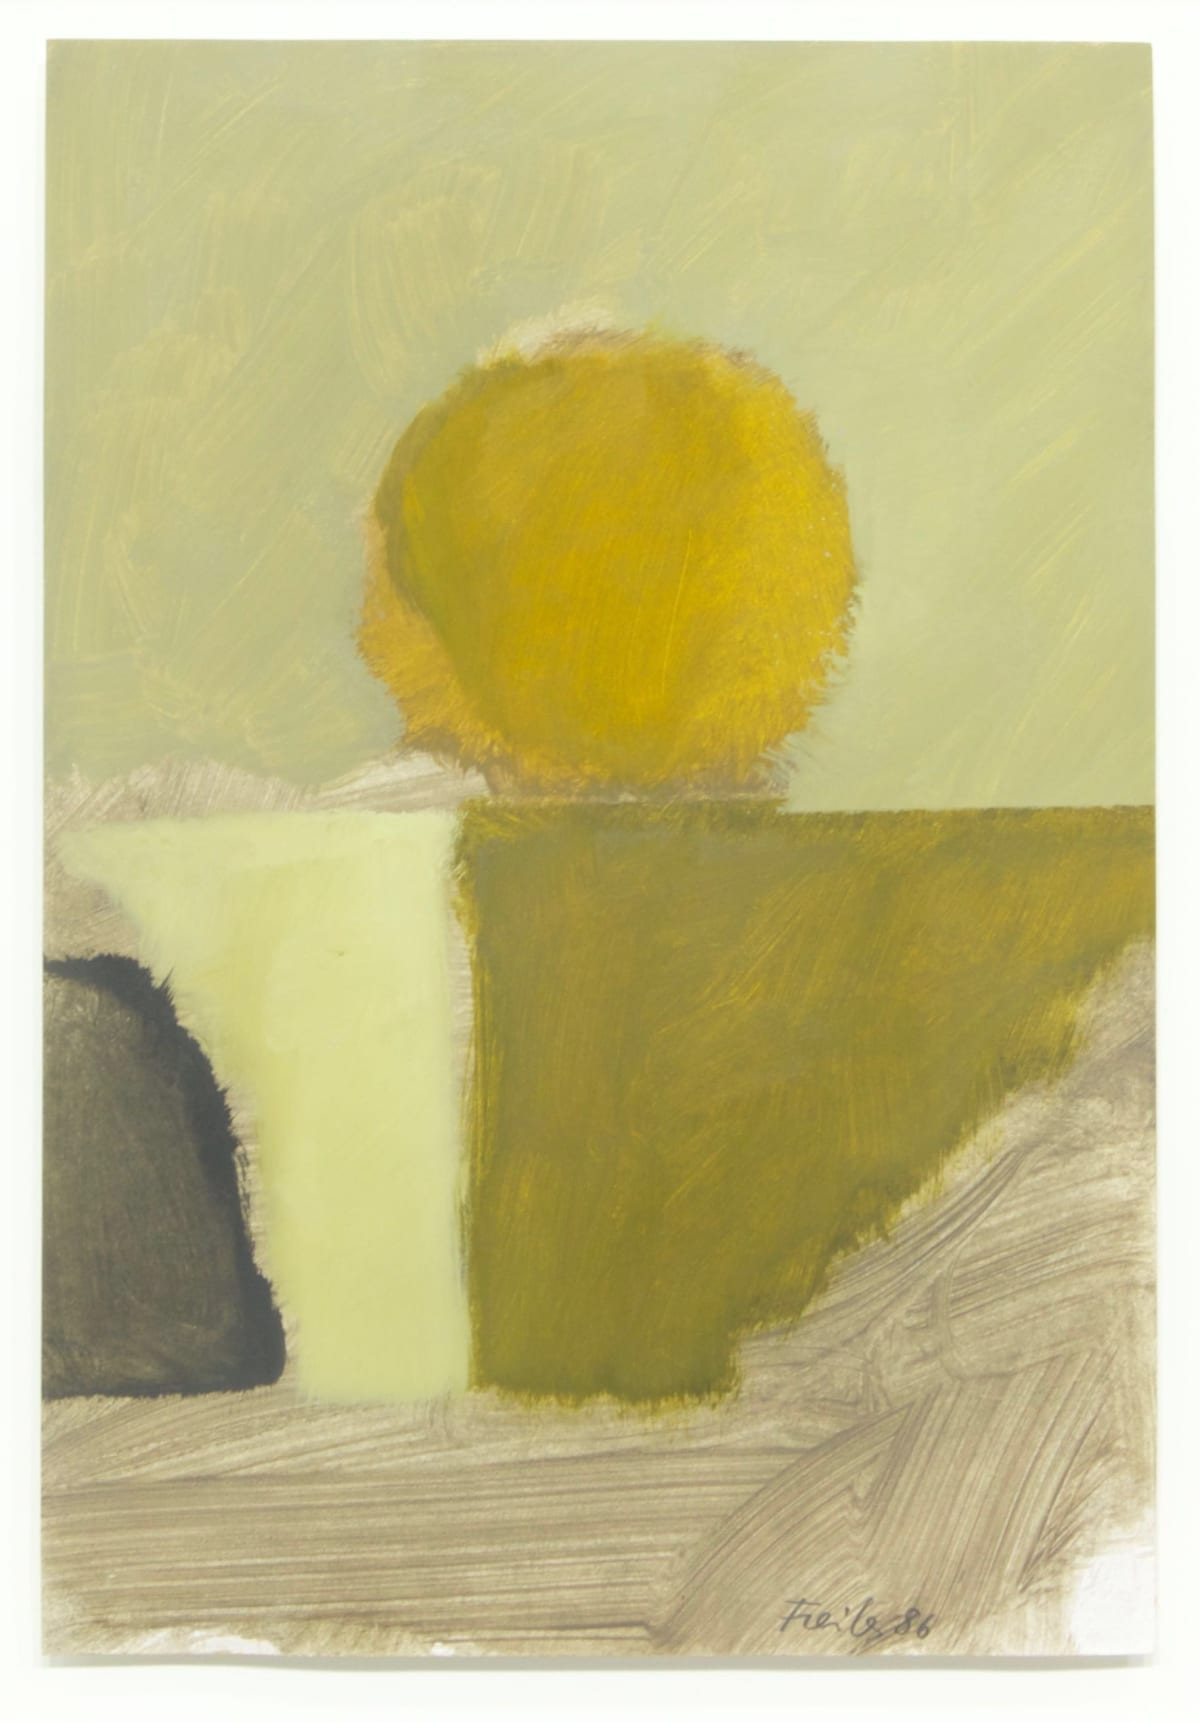 Antonio Freiles SENZA TITOLO, 1986 oil on paper. 48 x 33 cm (18.9 x 13 in)